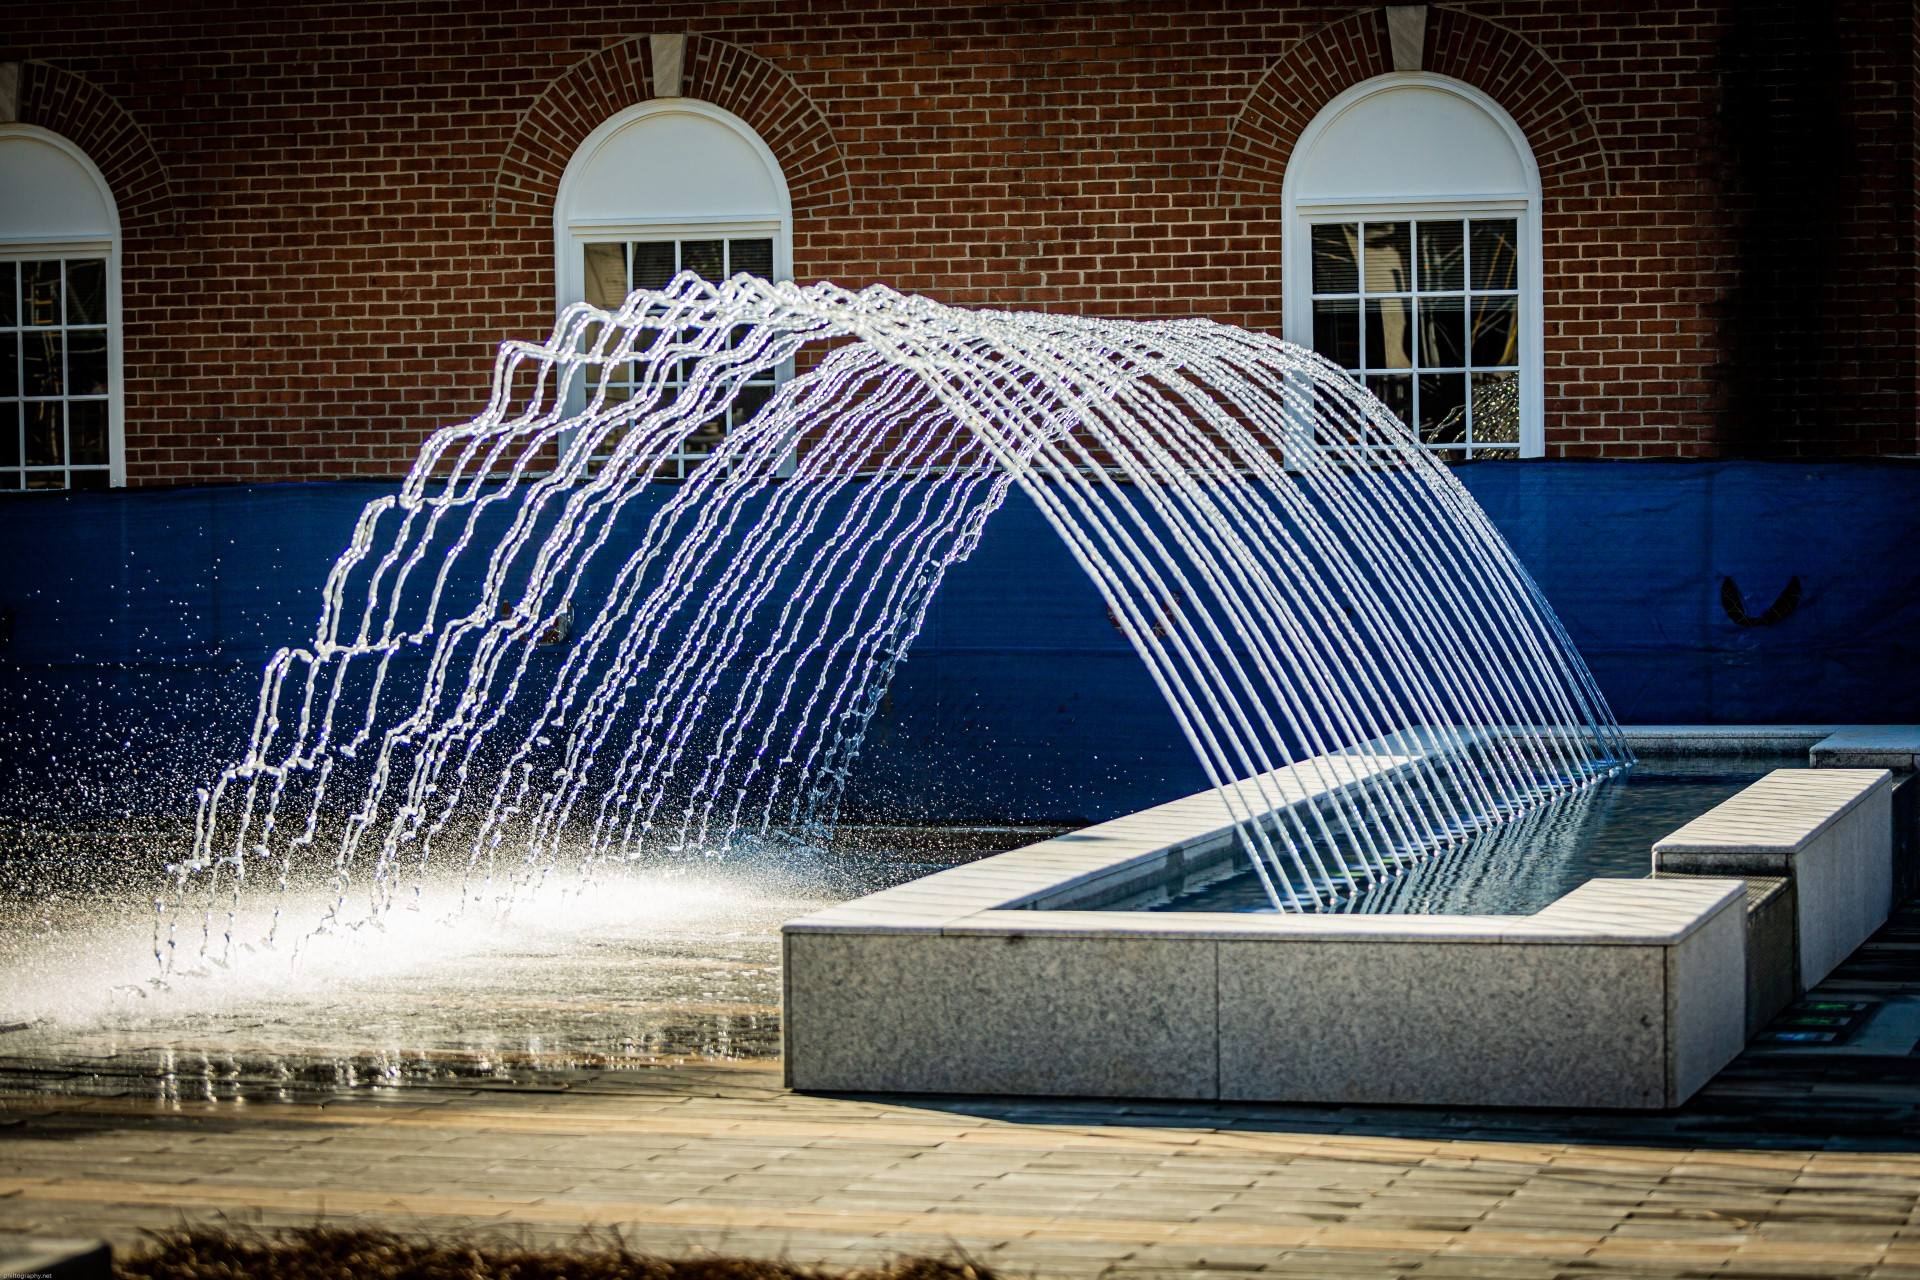 Kannapolis Downtown fountain creates an arc of water